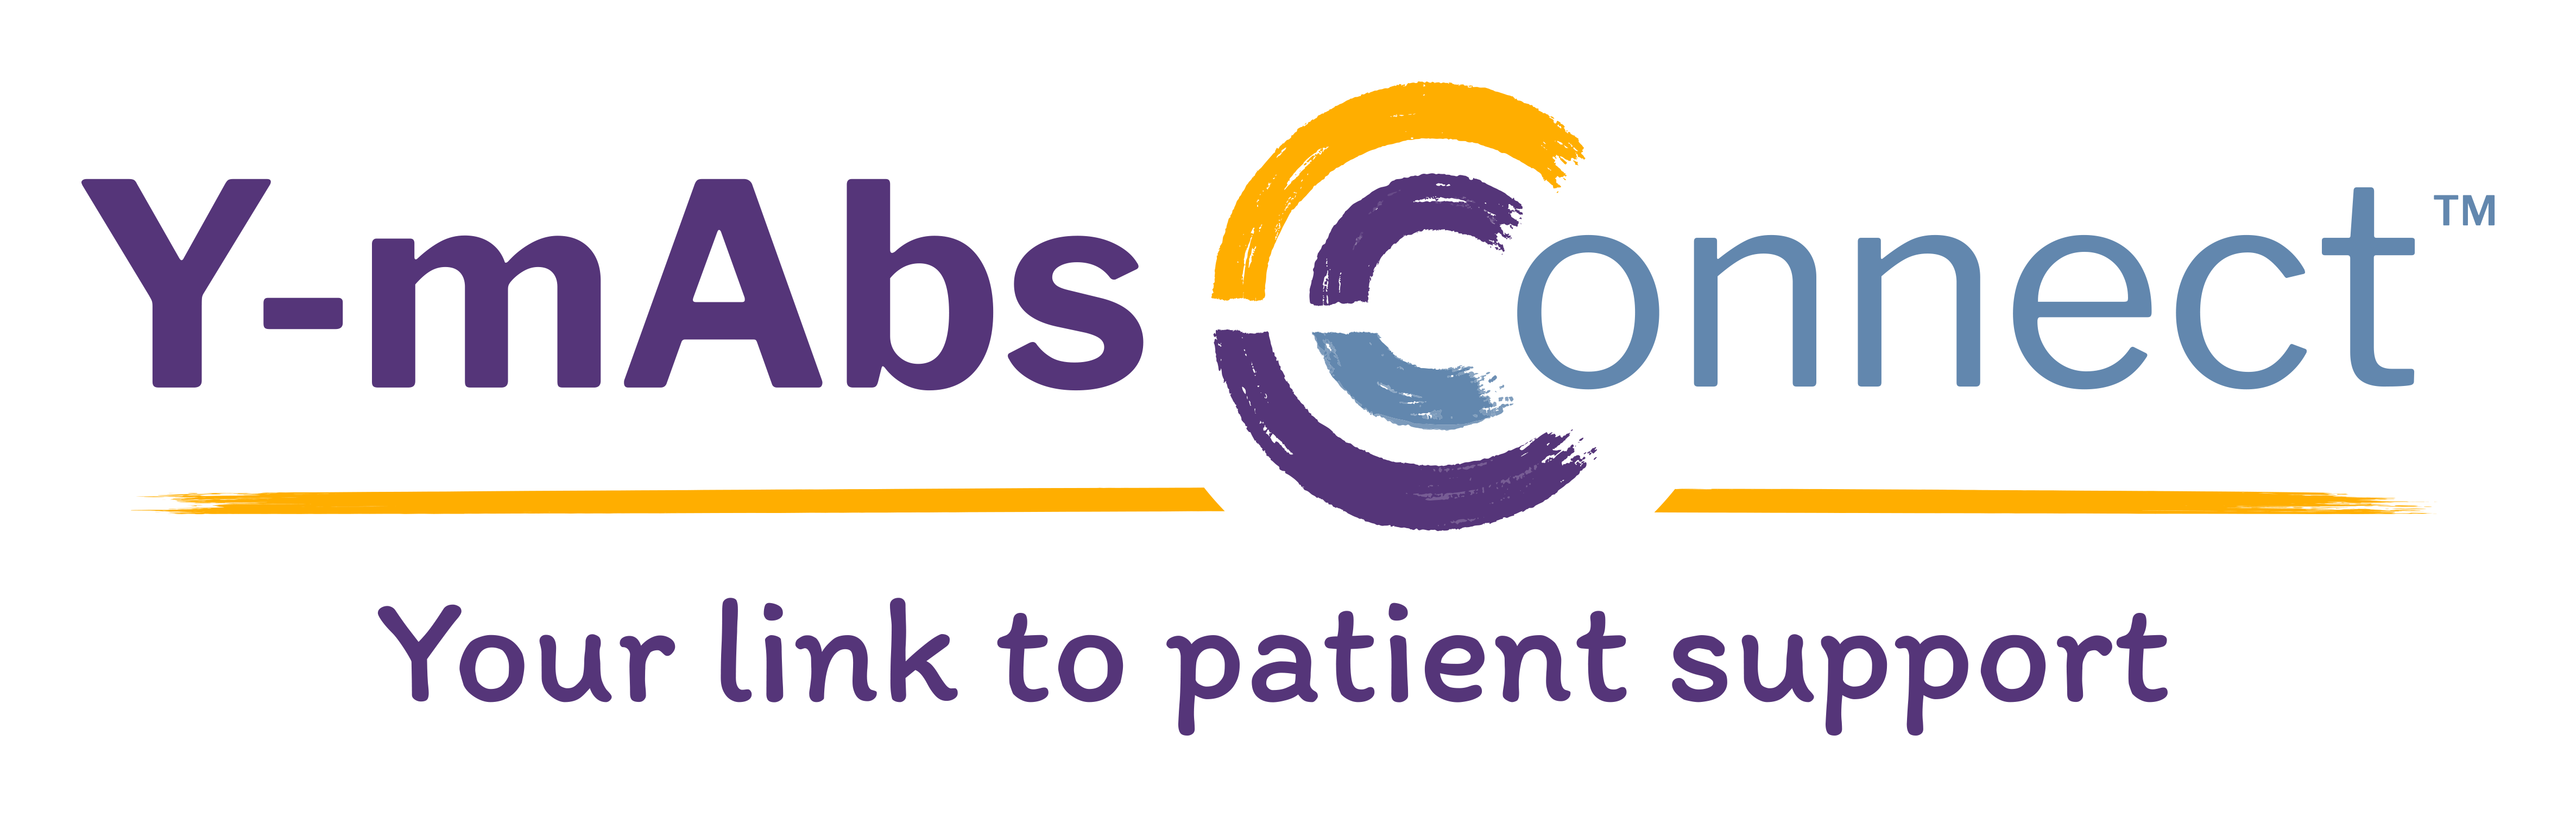 Y-mAbs Connect(tm) Logo